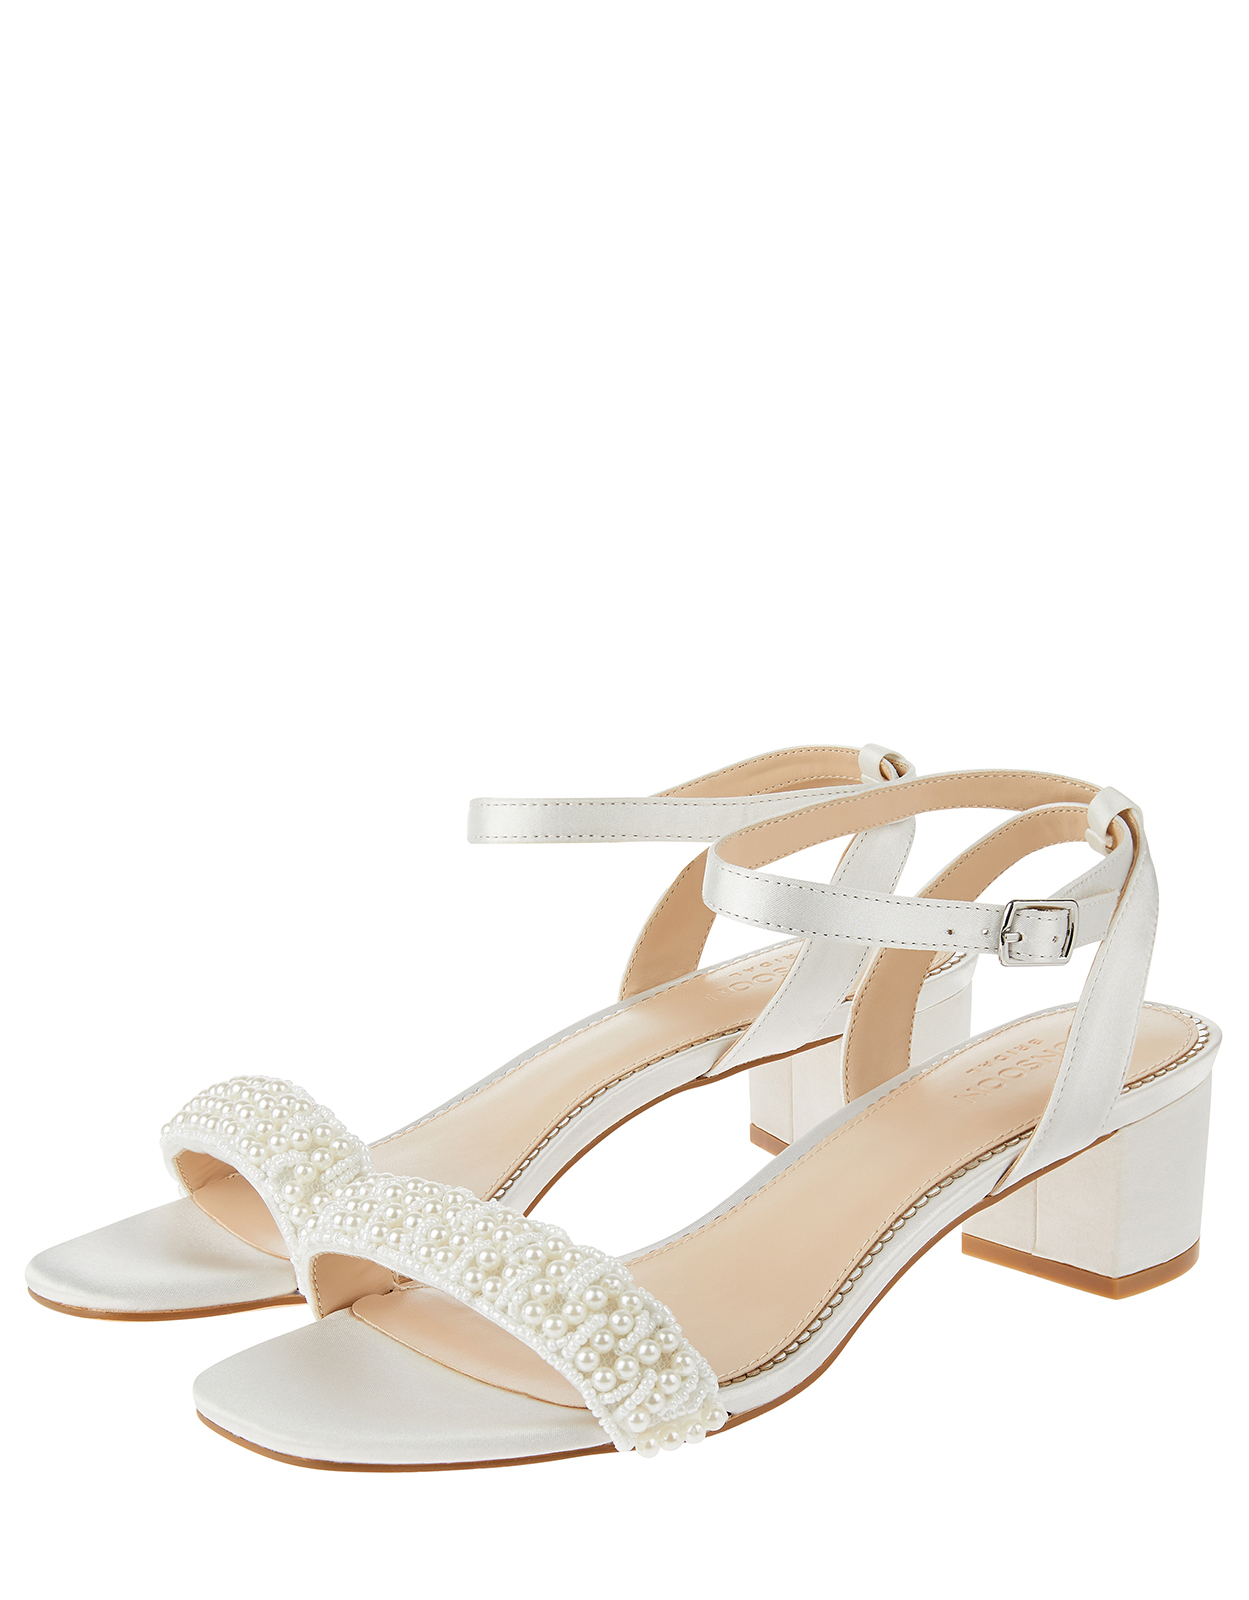 Monsoon Laurel Pearl Low Block Heel Sandals